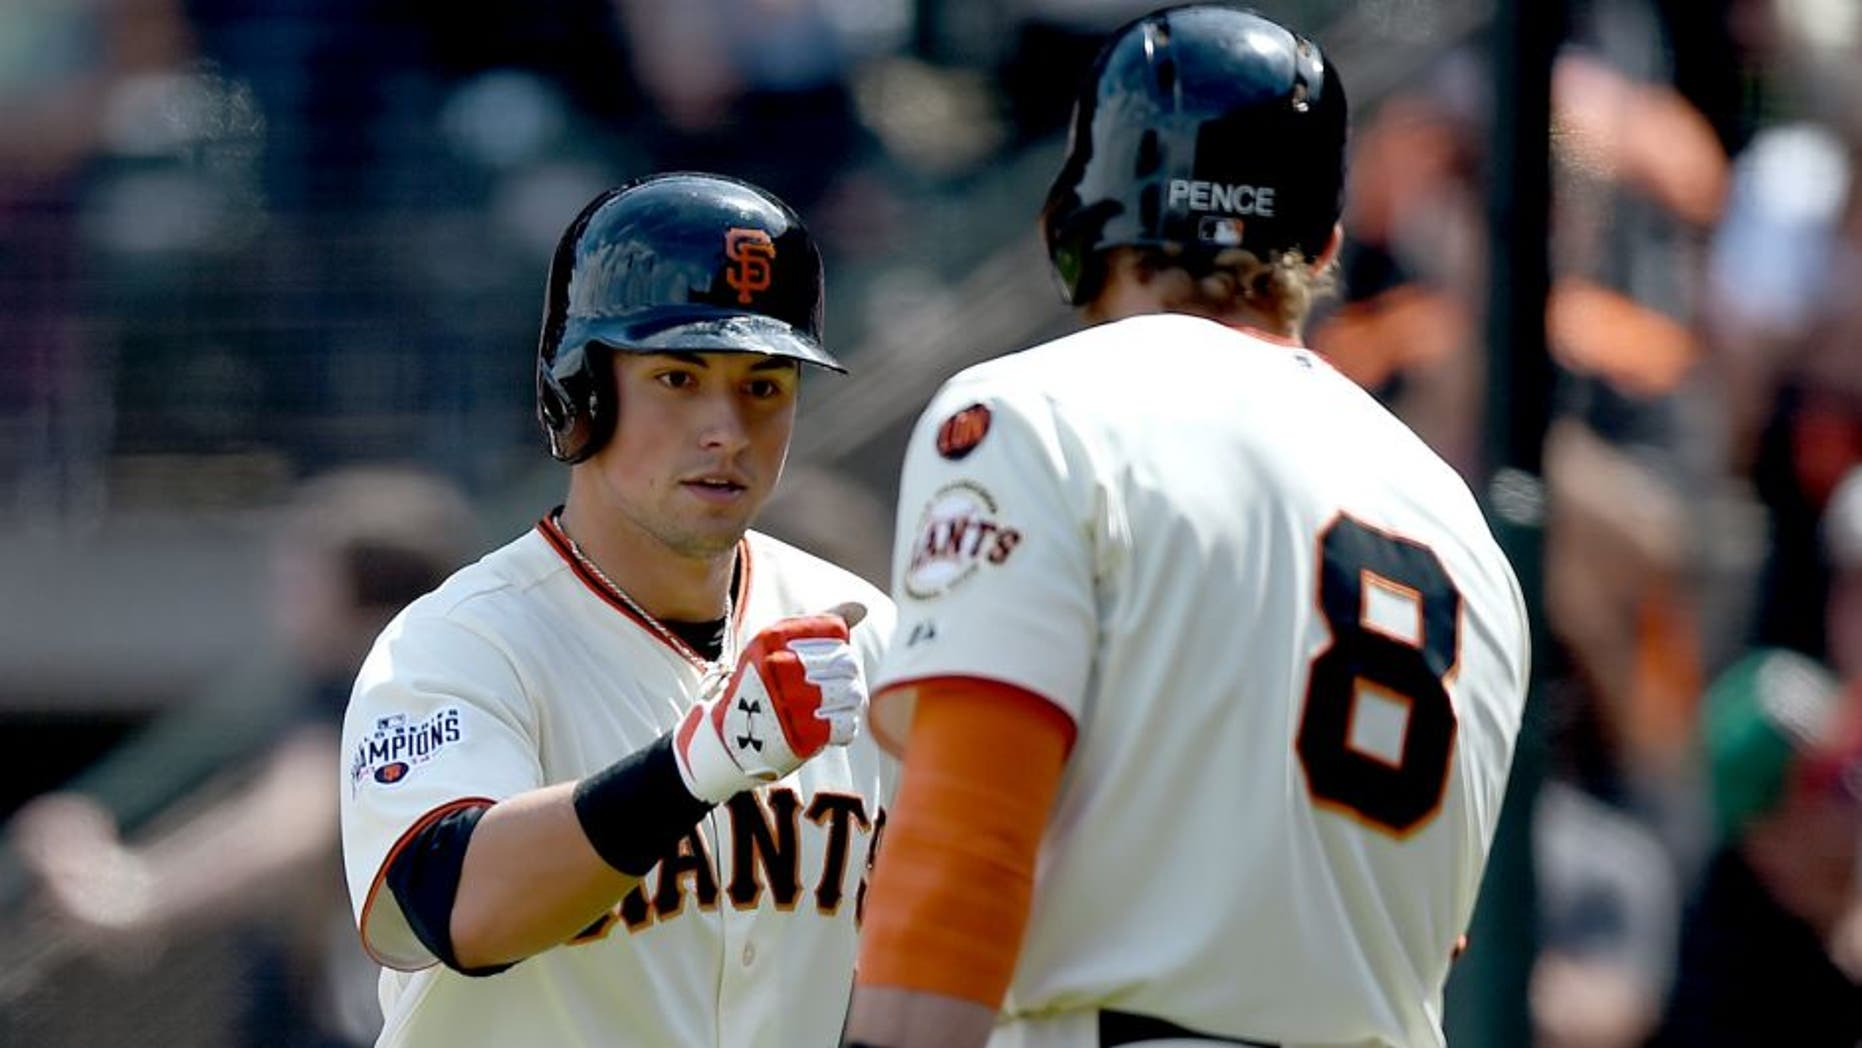 SAN FRANCISCO, CA - MAY 31: Joe Panik #12 of the San Francisco Giants is congratulated by Hunter Pence #8 after Panik hit a two-run homer against the Atlanta Braves in the bottom of the seventh inning at AT&T Park on May 31, 2015 in San Francisco, California. (Photo by Thearon W. Henderson/Getty Images)